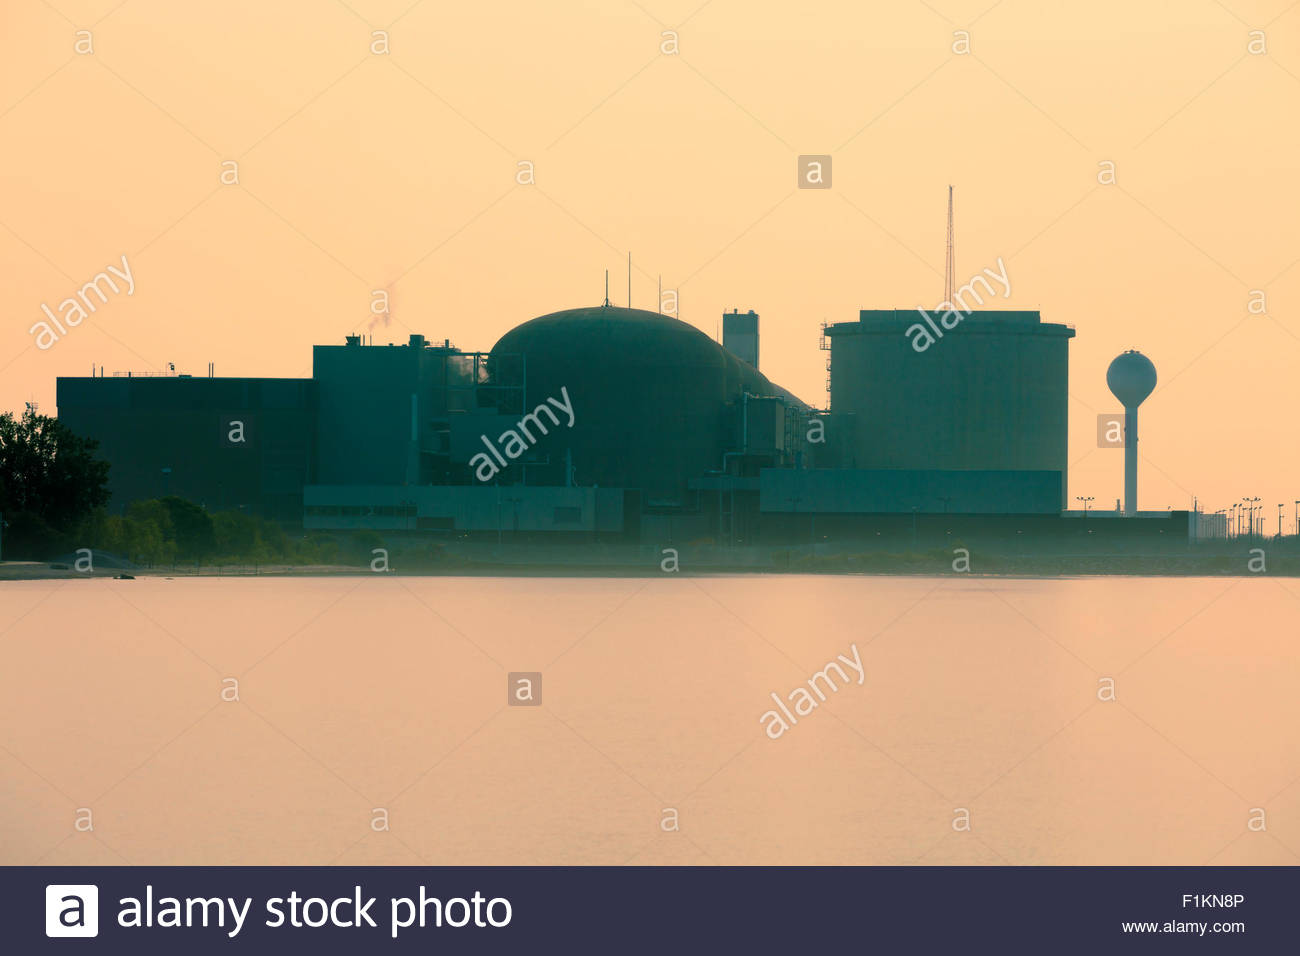 Candu nuclear electric power station at Pickering Ontario Canada - Stock Image